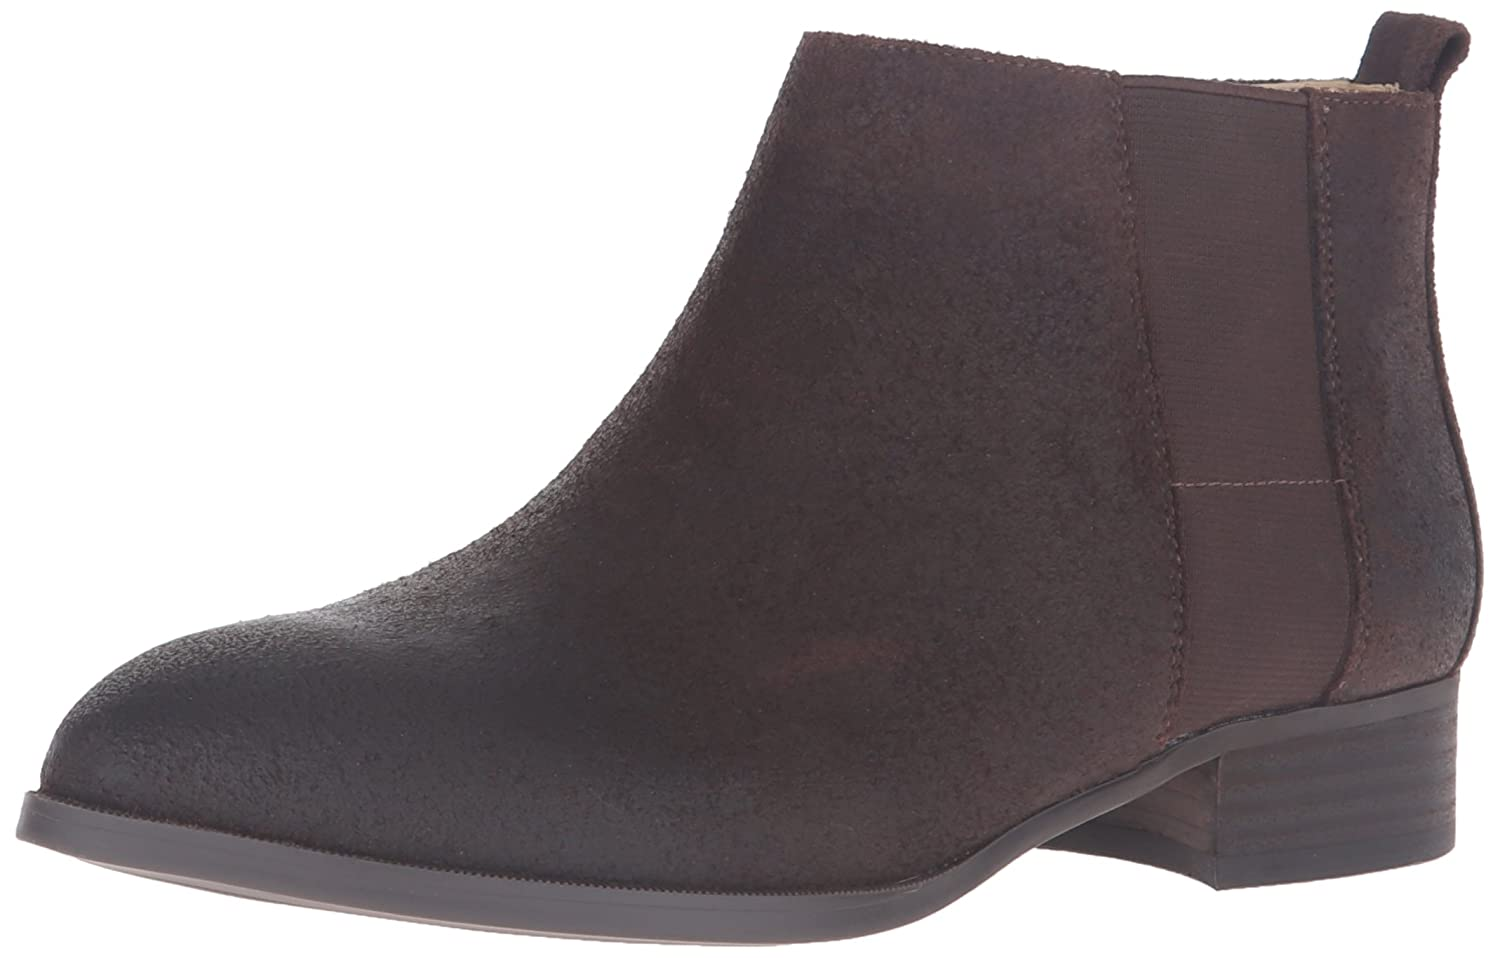 Nine West Women's Nolynn Leather Ankle Bootie B01DU0RFH2 10 B(M) US|Dark Brown